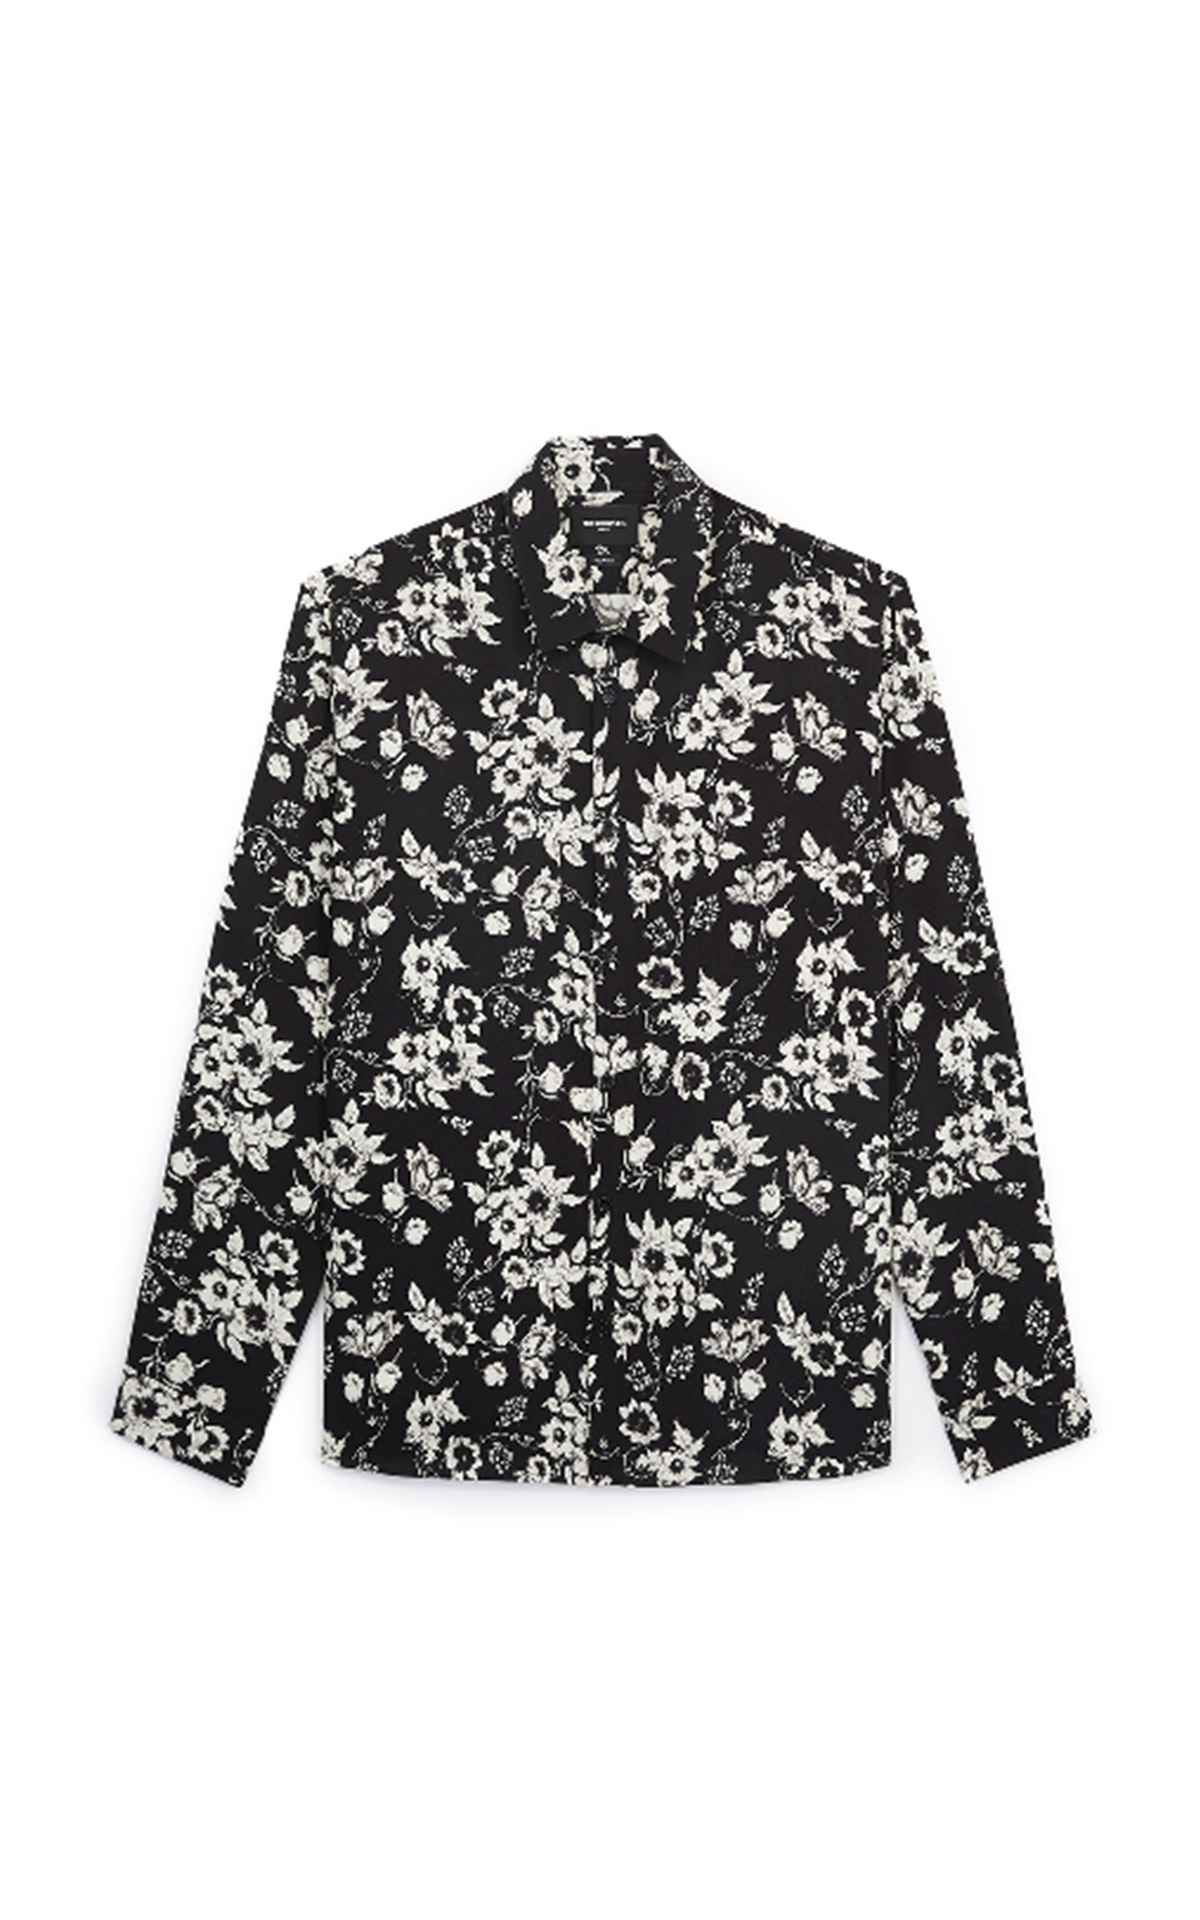 Flowered shirt The Kooples